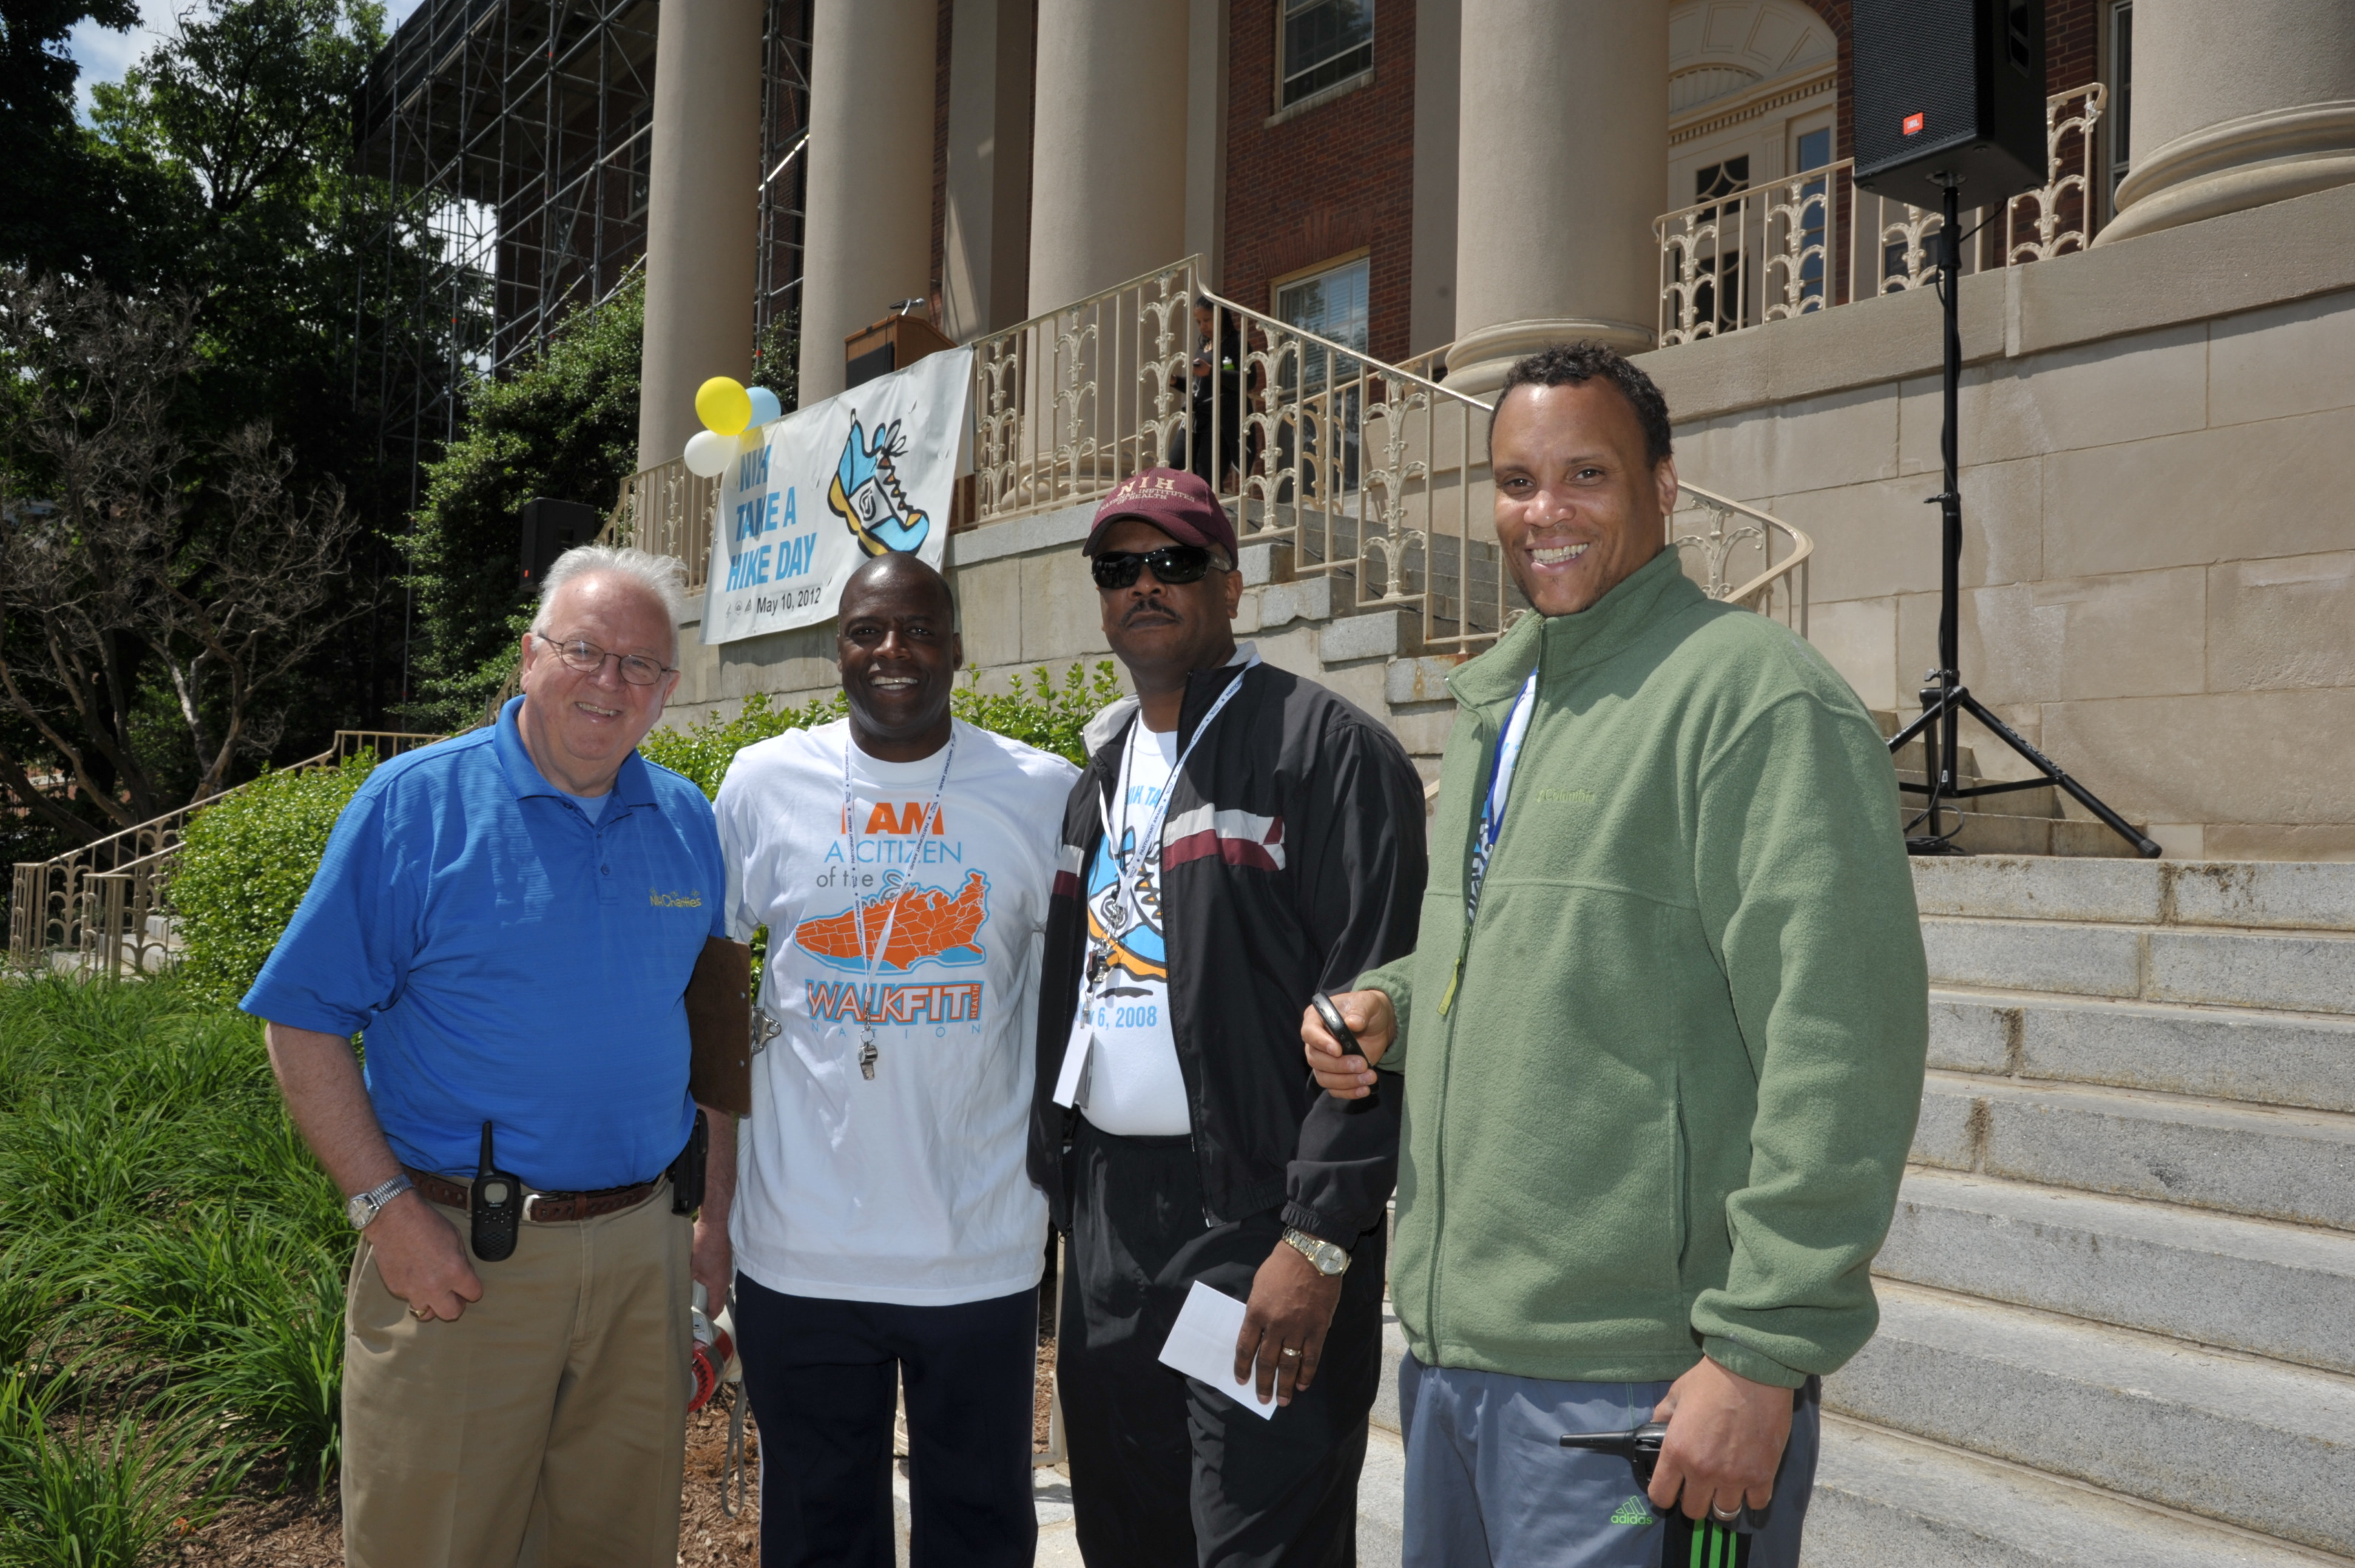 Randy Shcools, CEO NIH R&W, Darrel Green, Dr. Alfred Johnson, Director, ORS, Chris Gaines, Wellness Program Manager, DATS